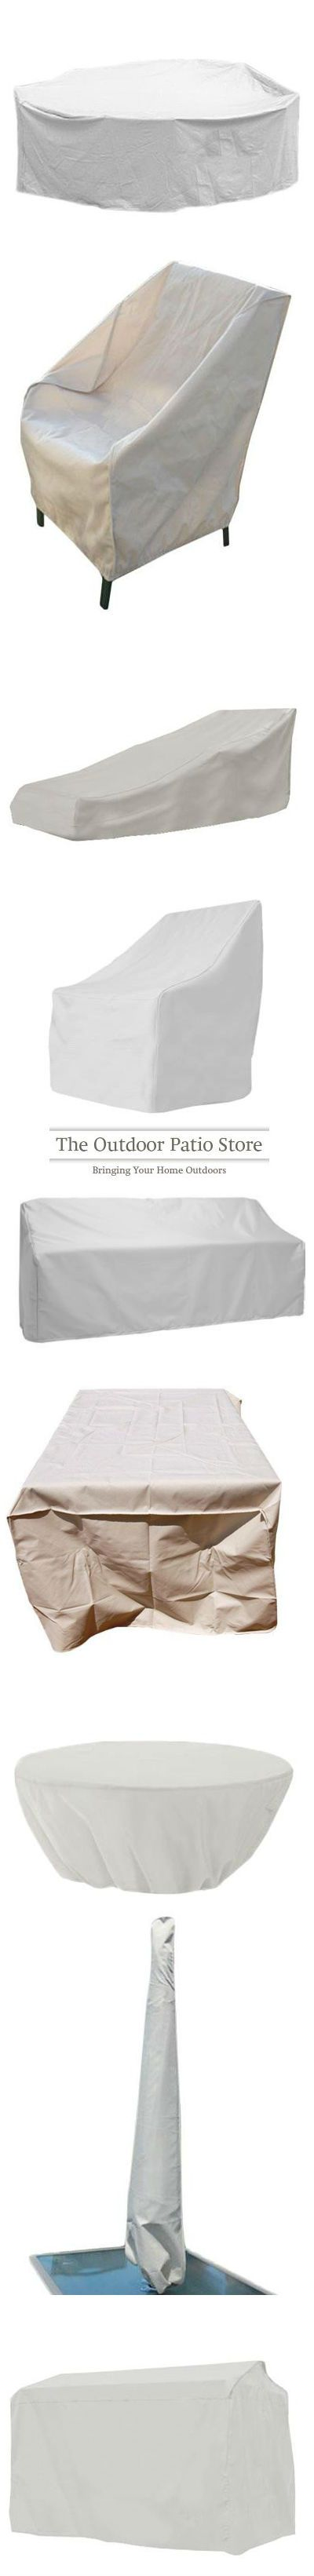 Best Covers To Protect And Extend The Life Of Your Outdoor Furniture!